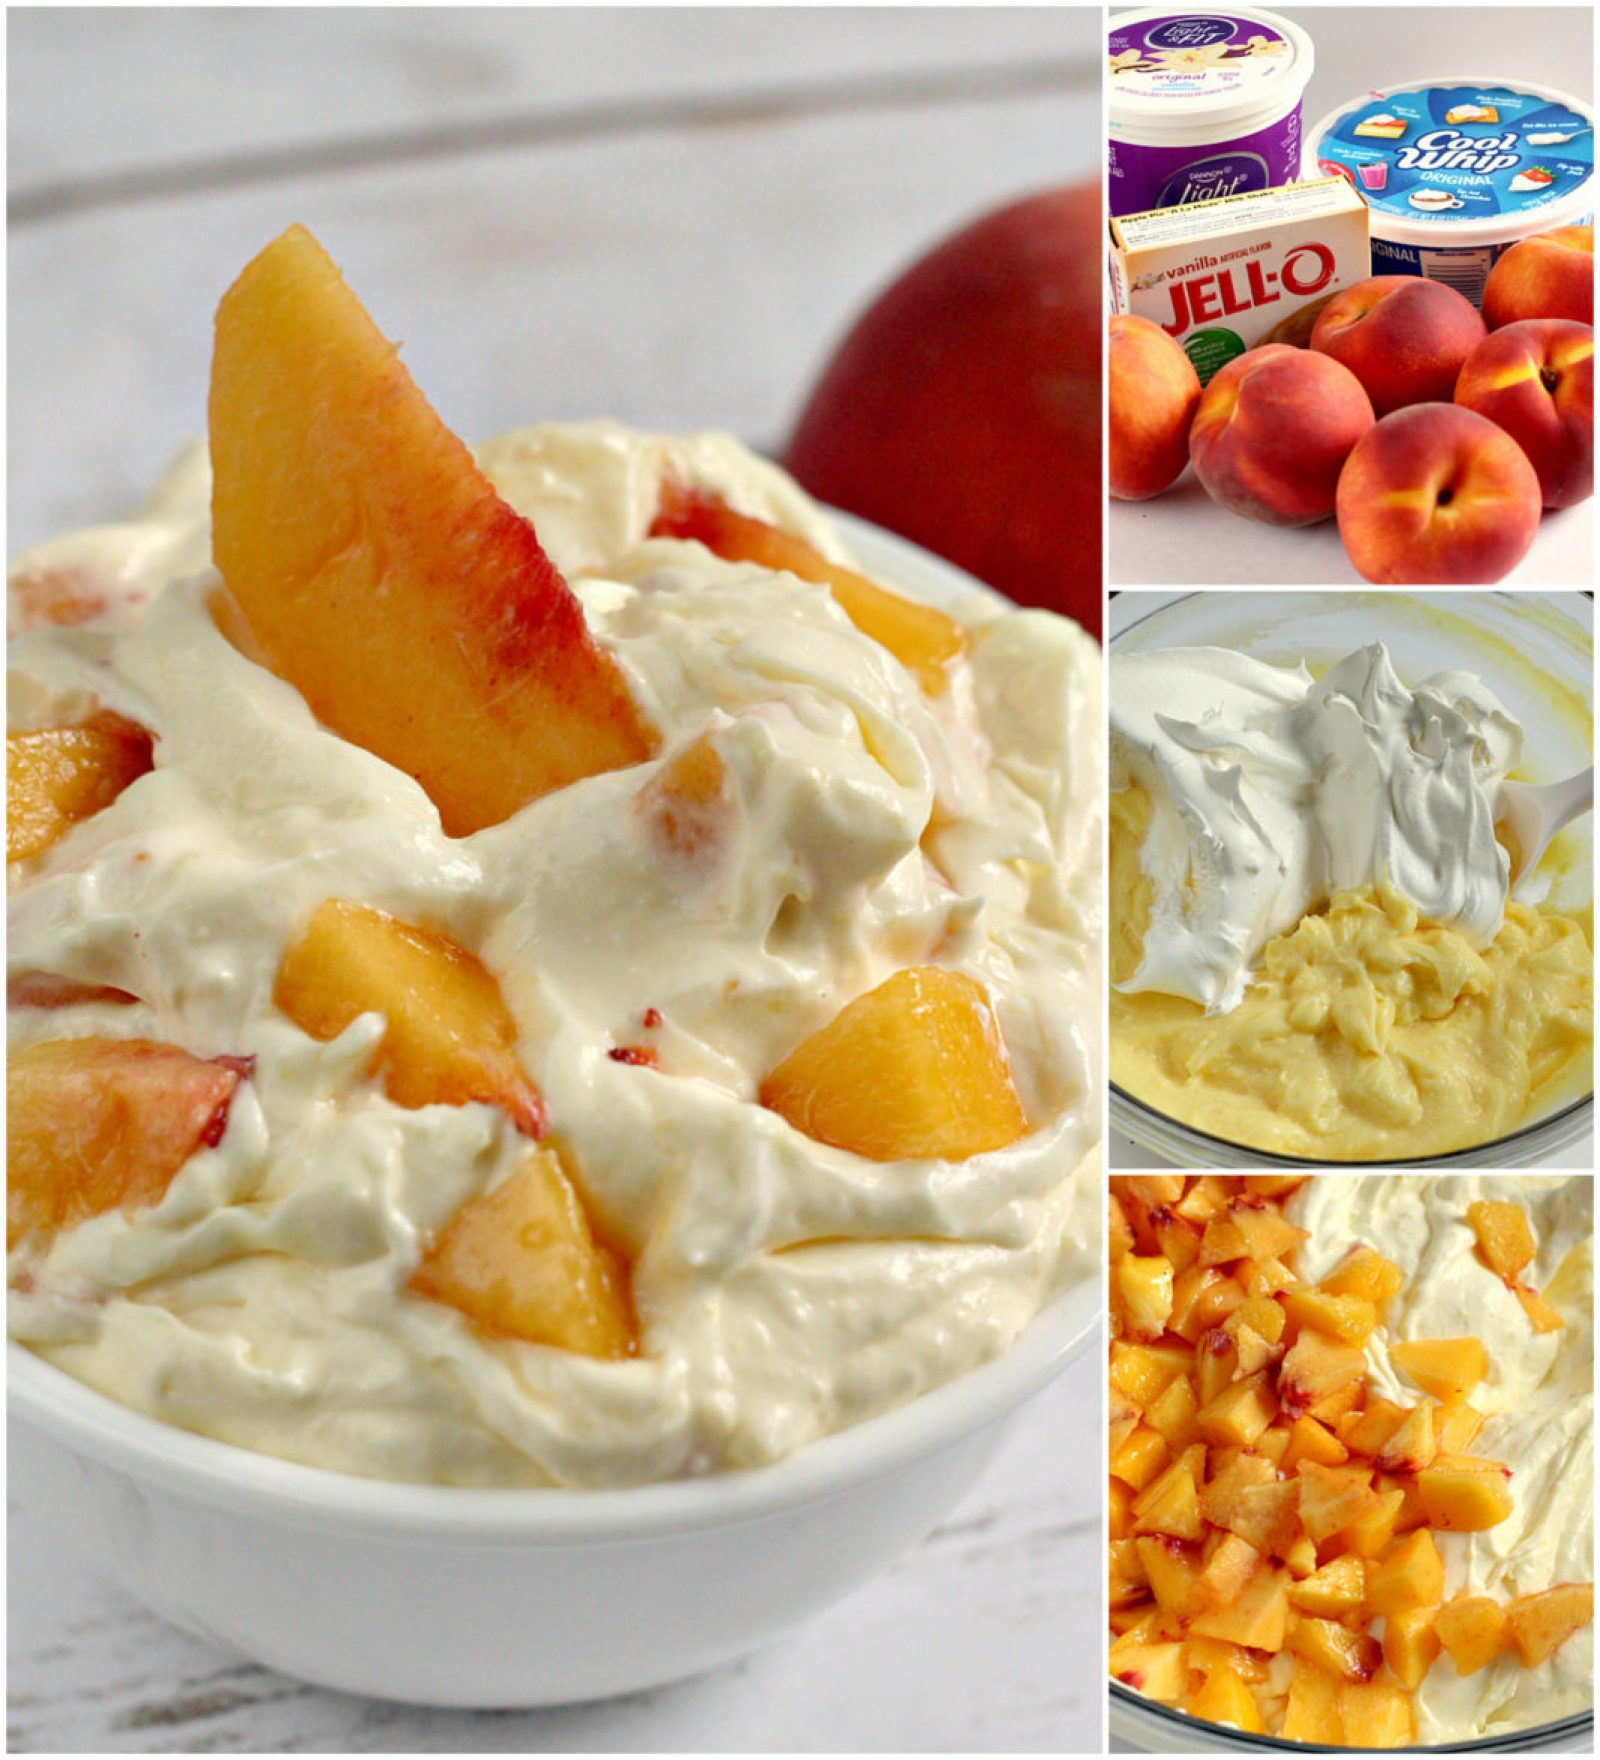 Step-by-step photos and instructions on how to make this easy Peaches and Cream Salad in just a few minutes!